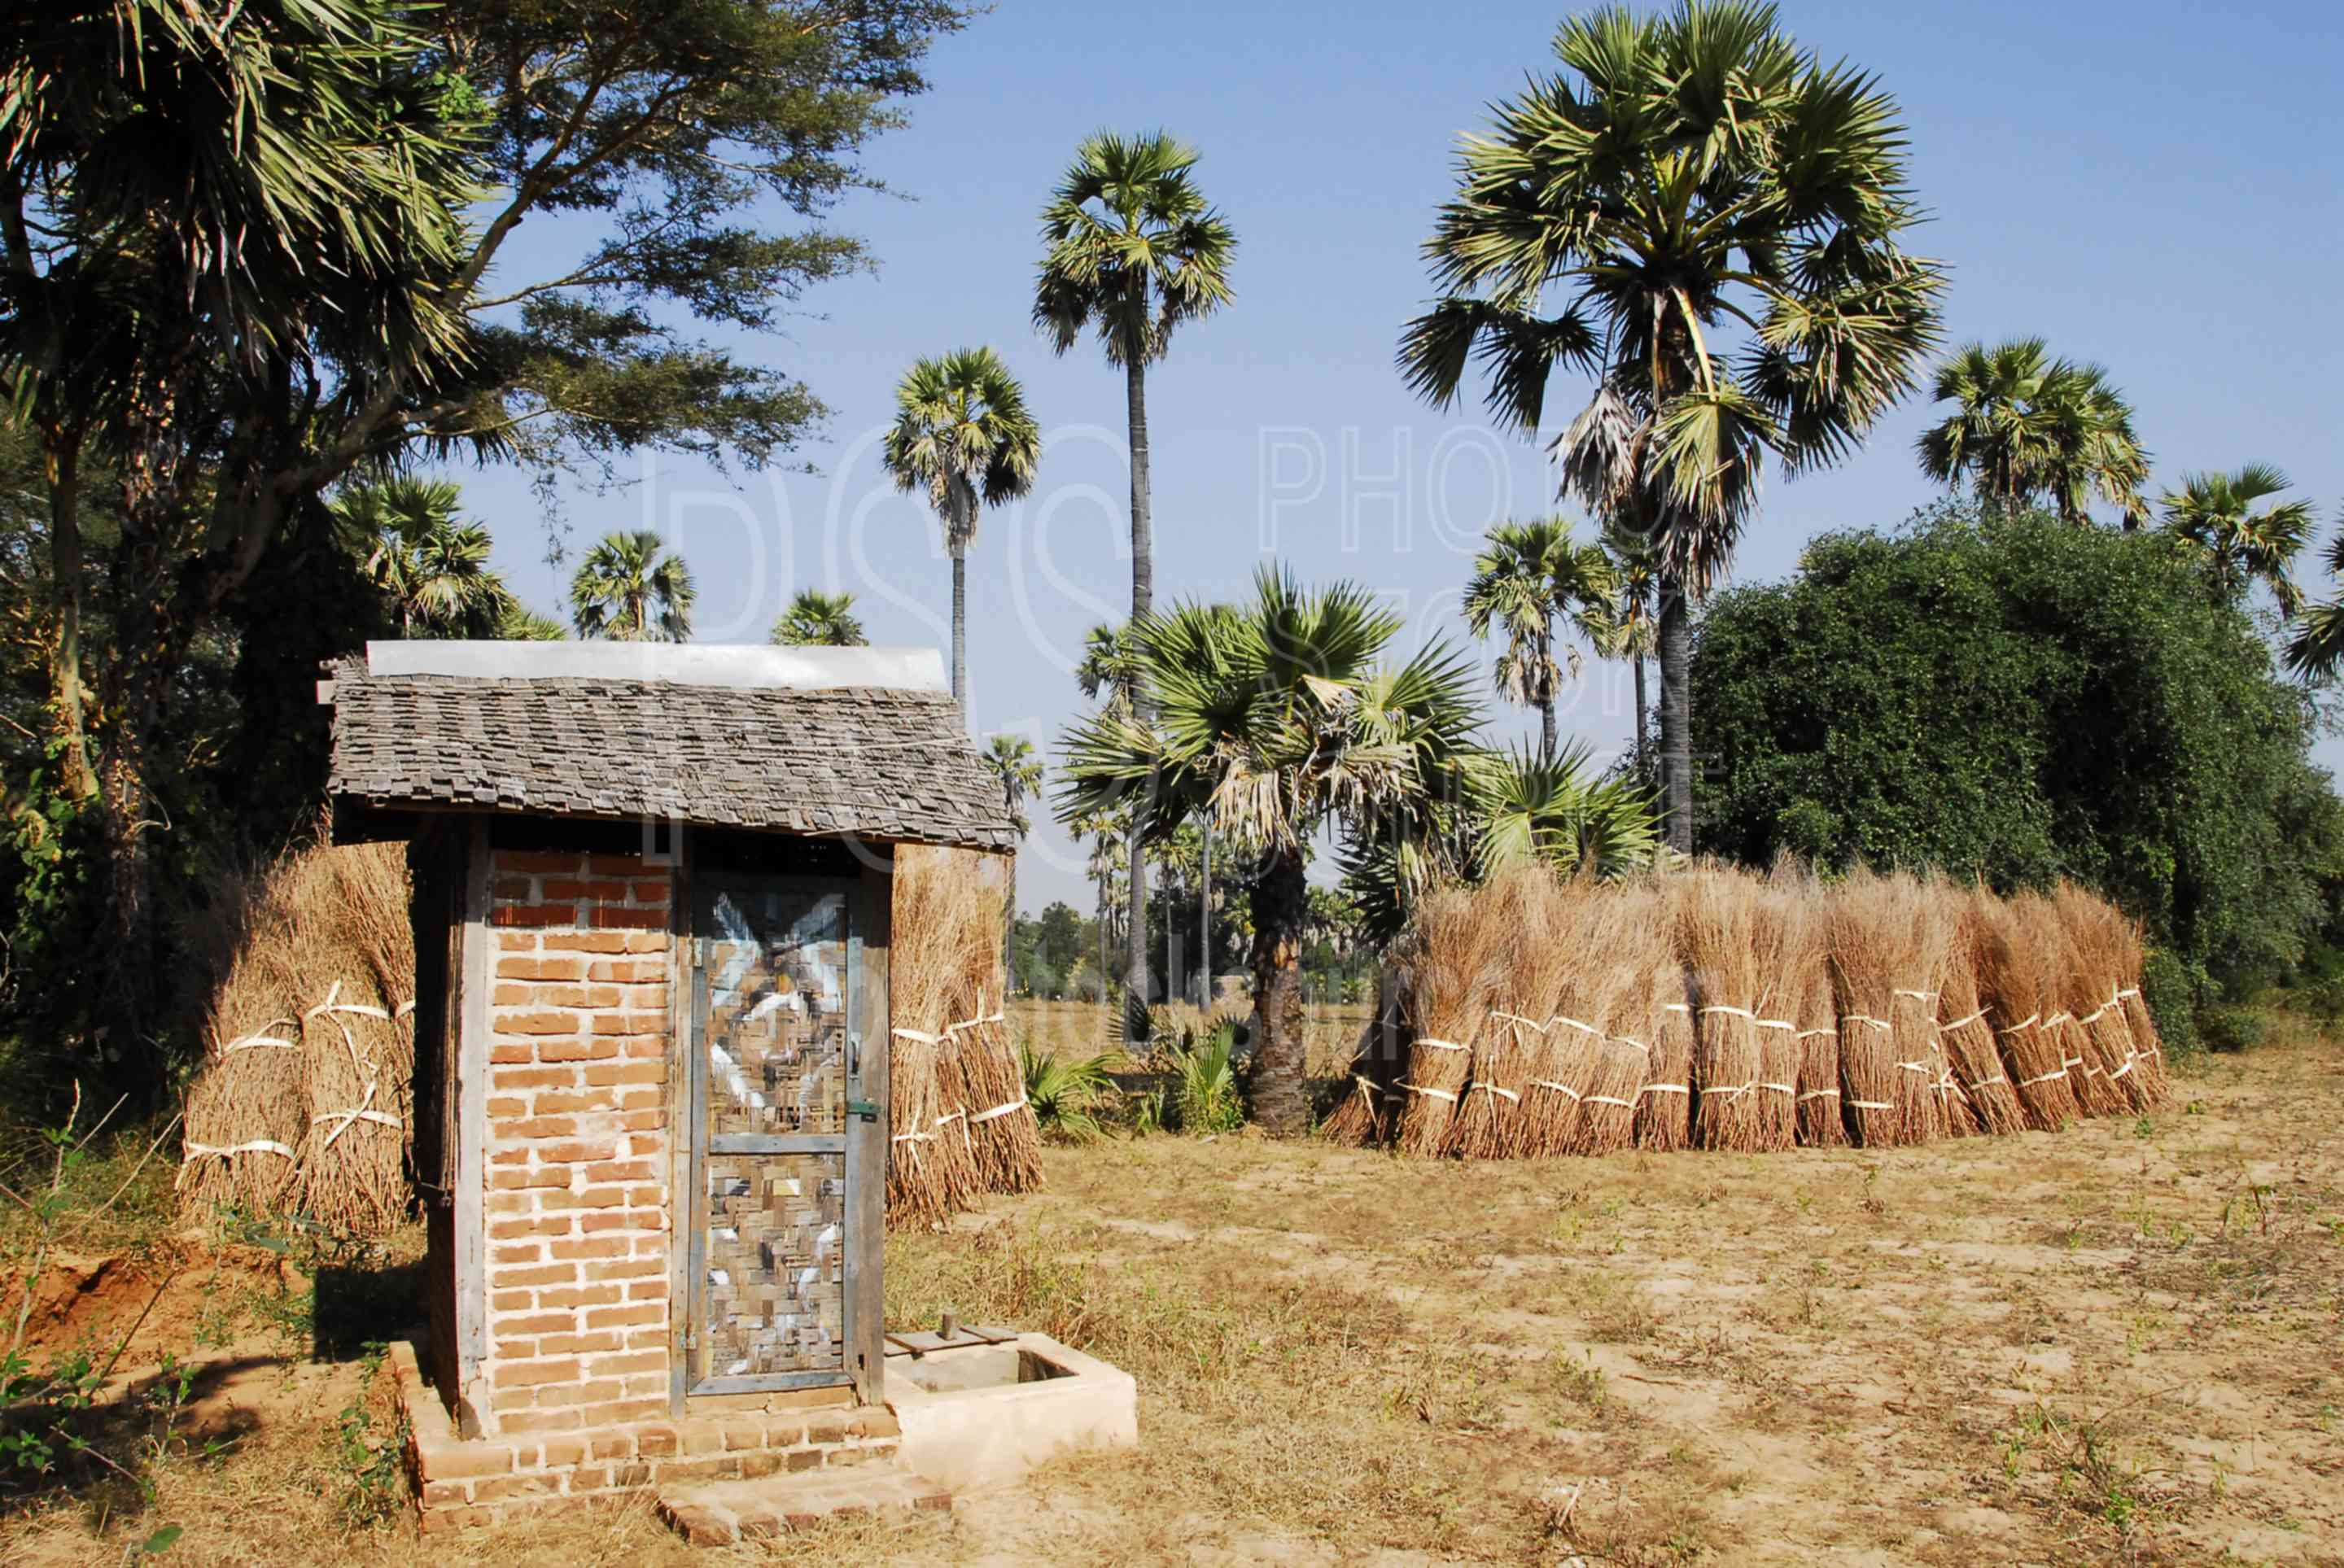 Outhouse and Palm Trees,myanmar,bathroom,outhouse,privy